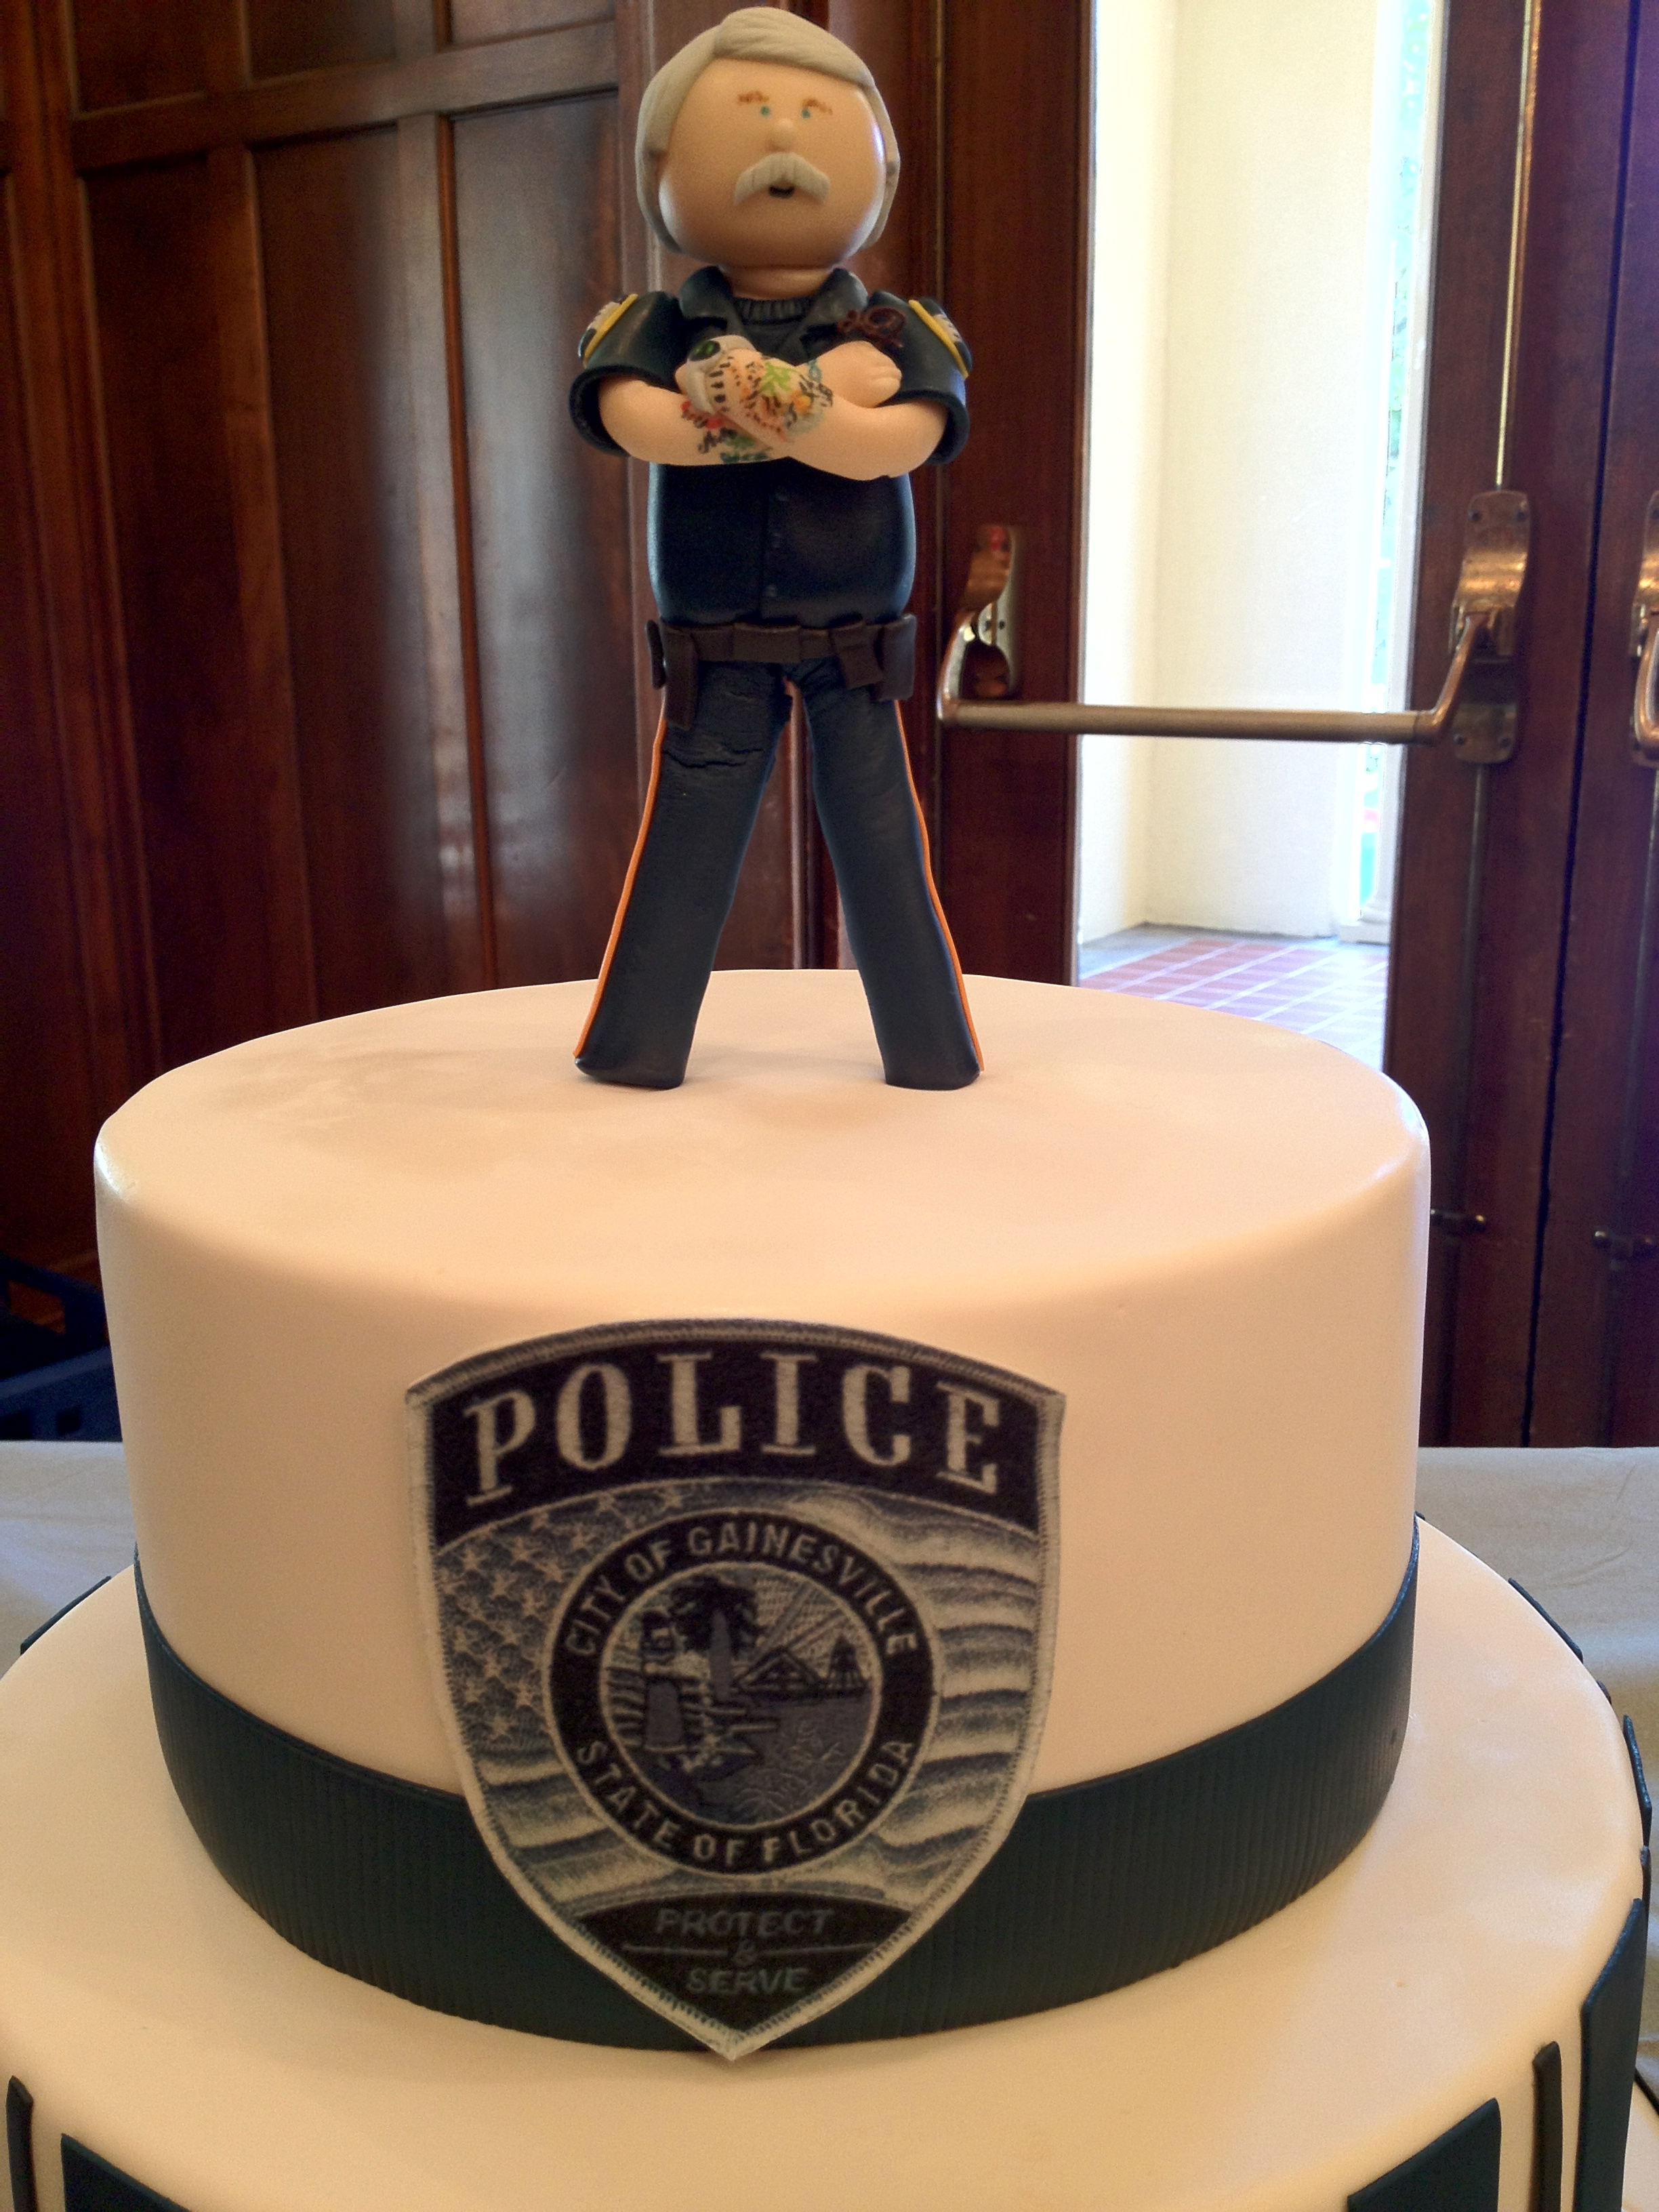 Cake Decorations For Police Cake : Richard Armstrong retirement Cake Fred Posner